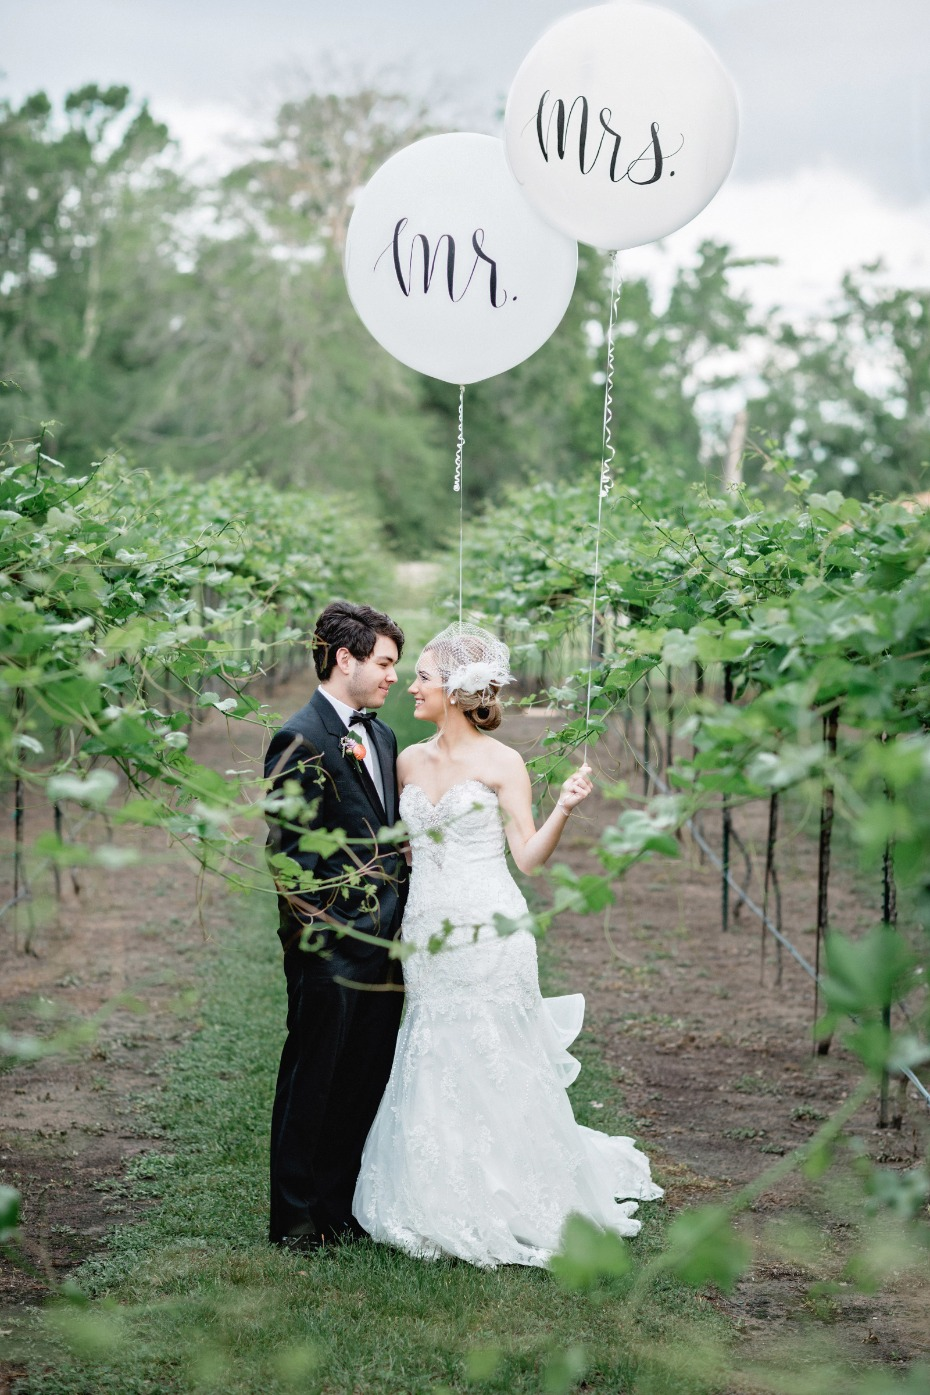 Mr and Mrs giant balloons